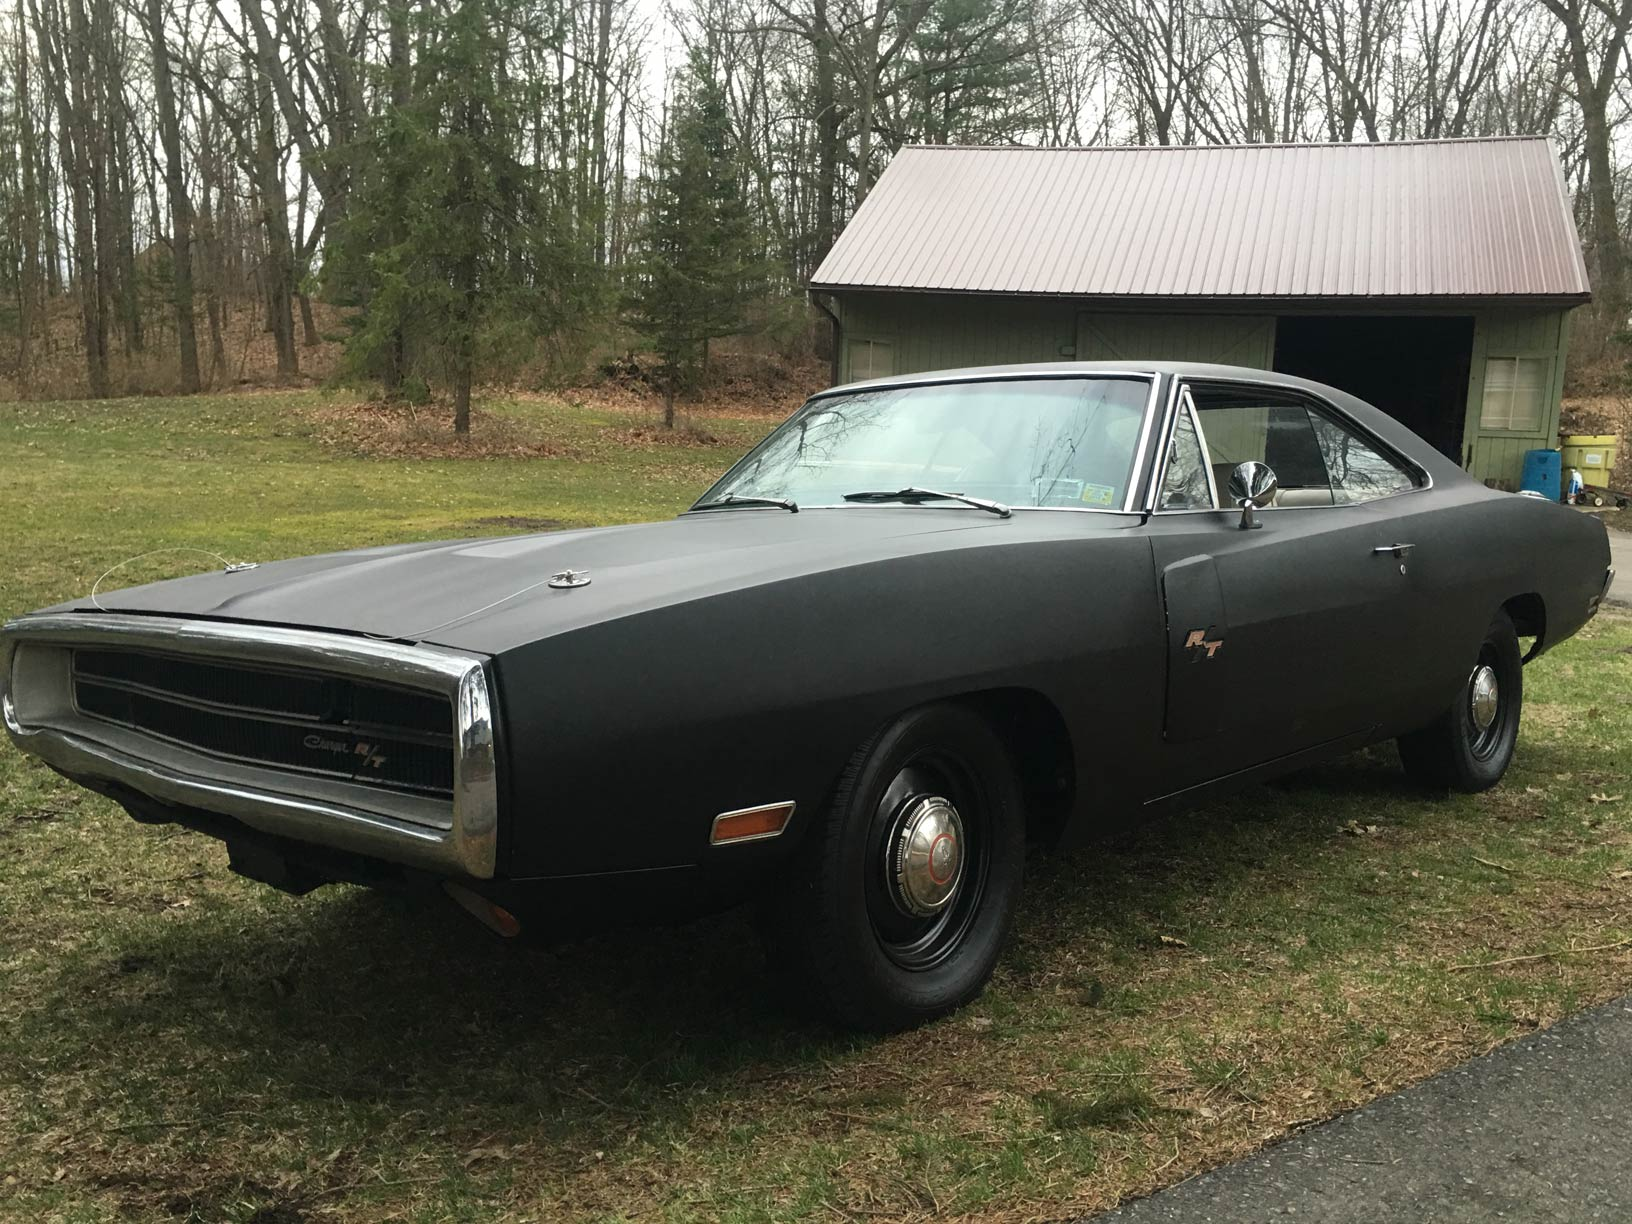 1970 charger Rt 440 u code fe5 red